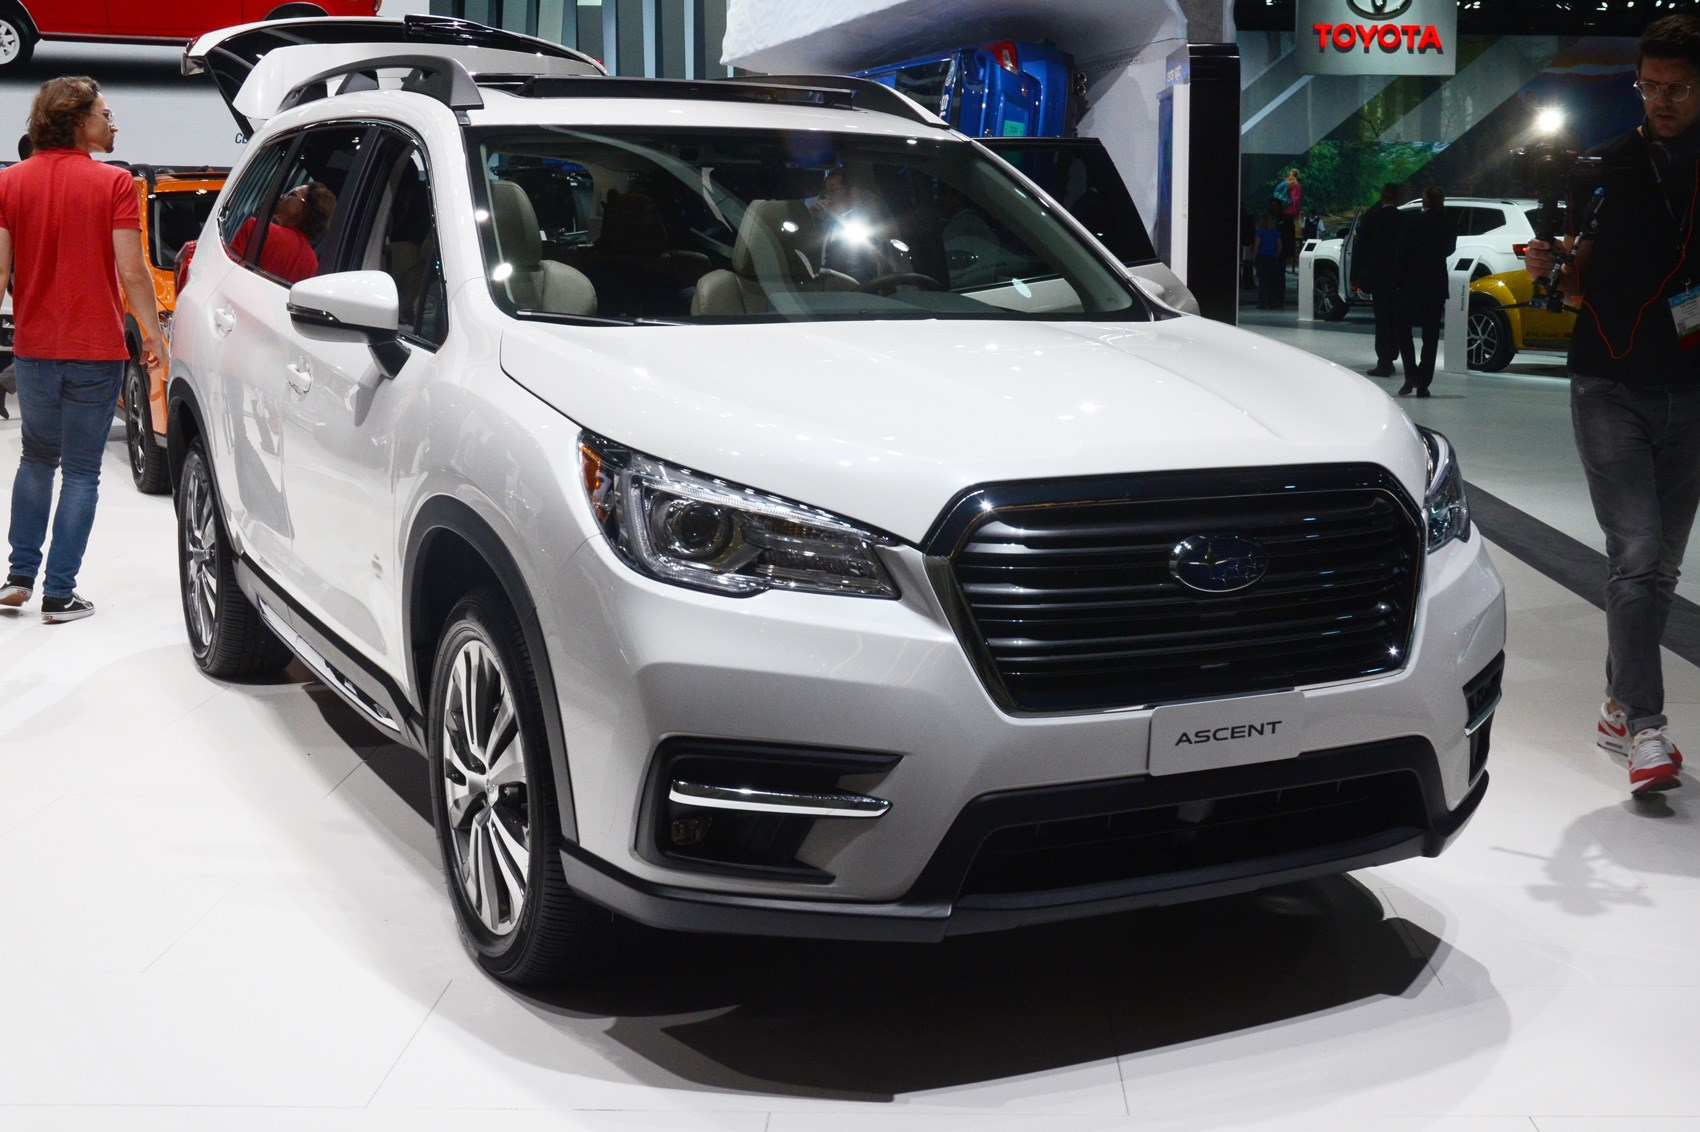 subaru ascent suv pics specs and details by car magazine. Black Bedroom Furniture Sets. Home Design Ideas